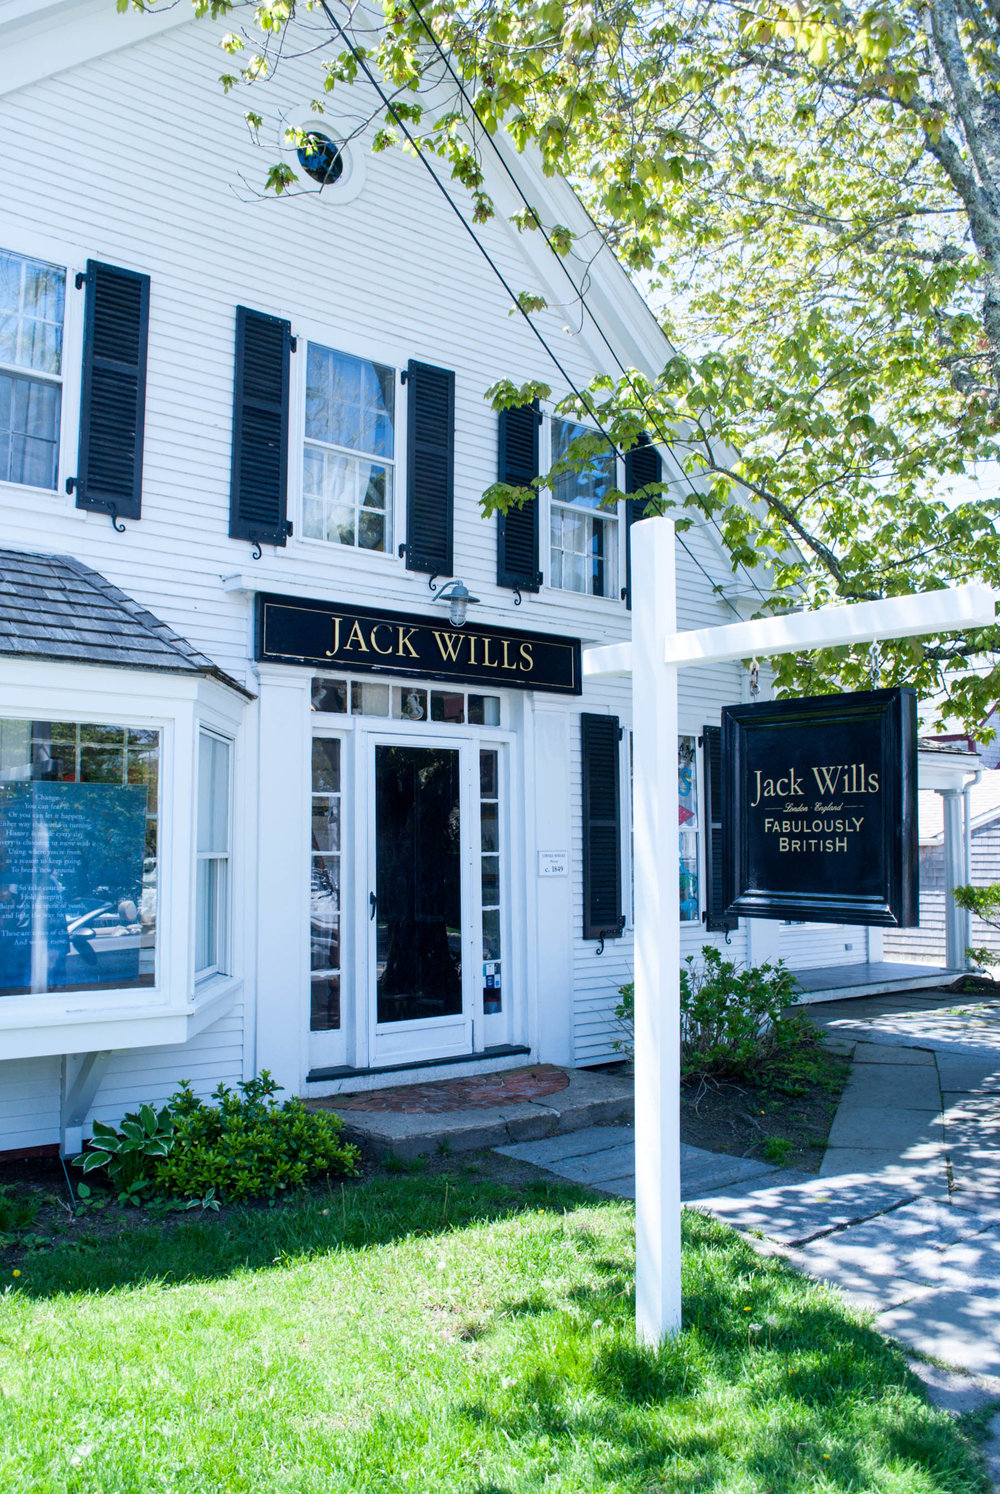 Shopping in Chatham, Massachusetts — Thinking of taking a Cape Cod vacation? Stay in Chatham, Massachusetts for a relaxing beach vacation with your family and friends. This travel guide will tell you how to get there, where to stay, what to do, and what to eat!